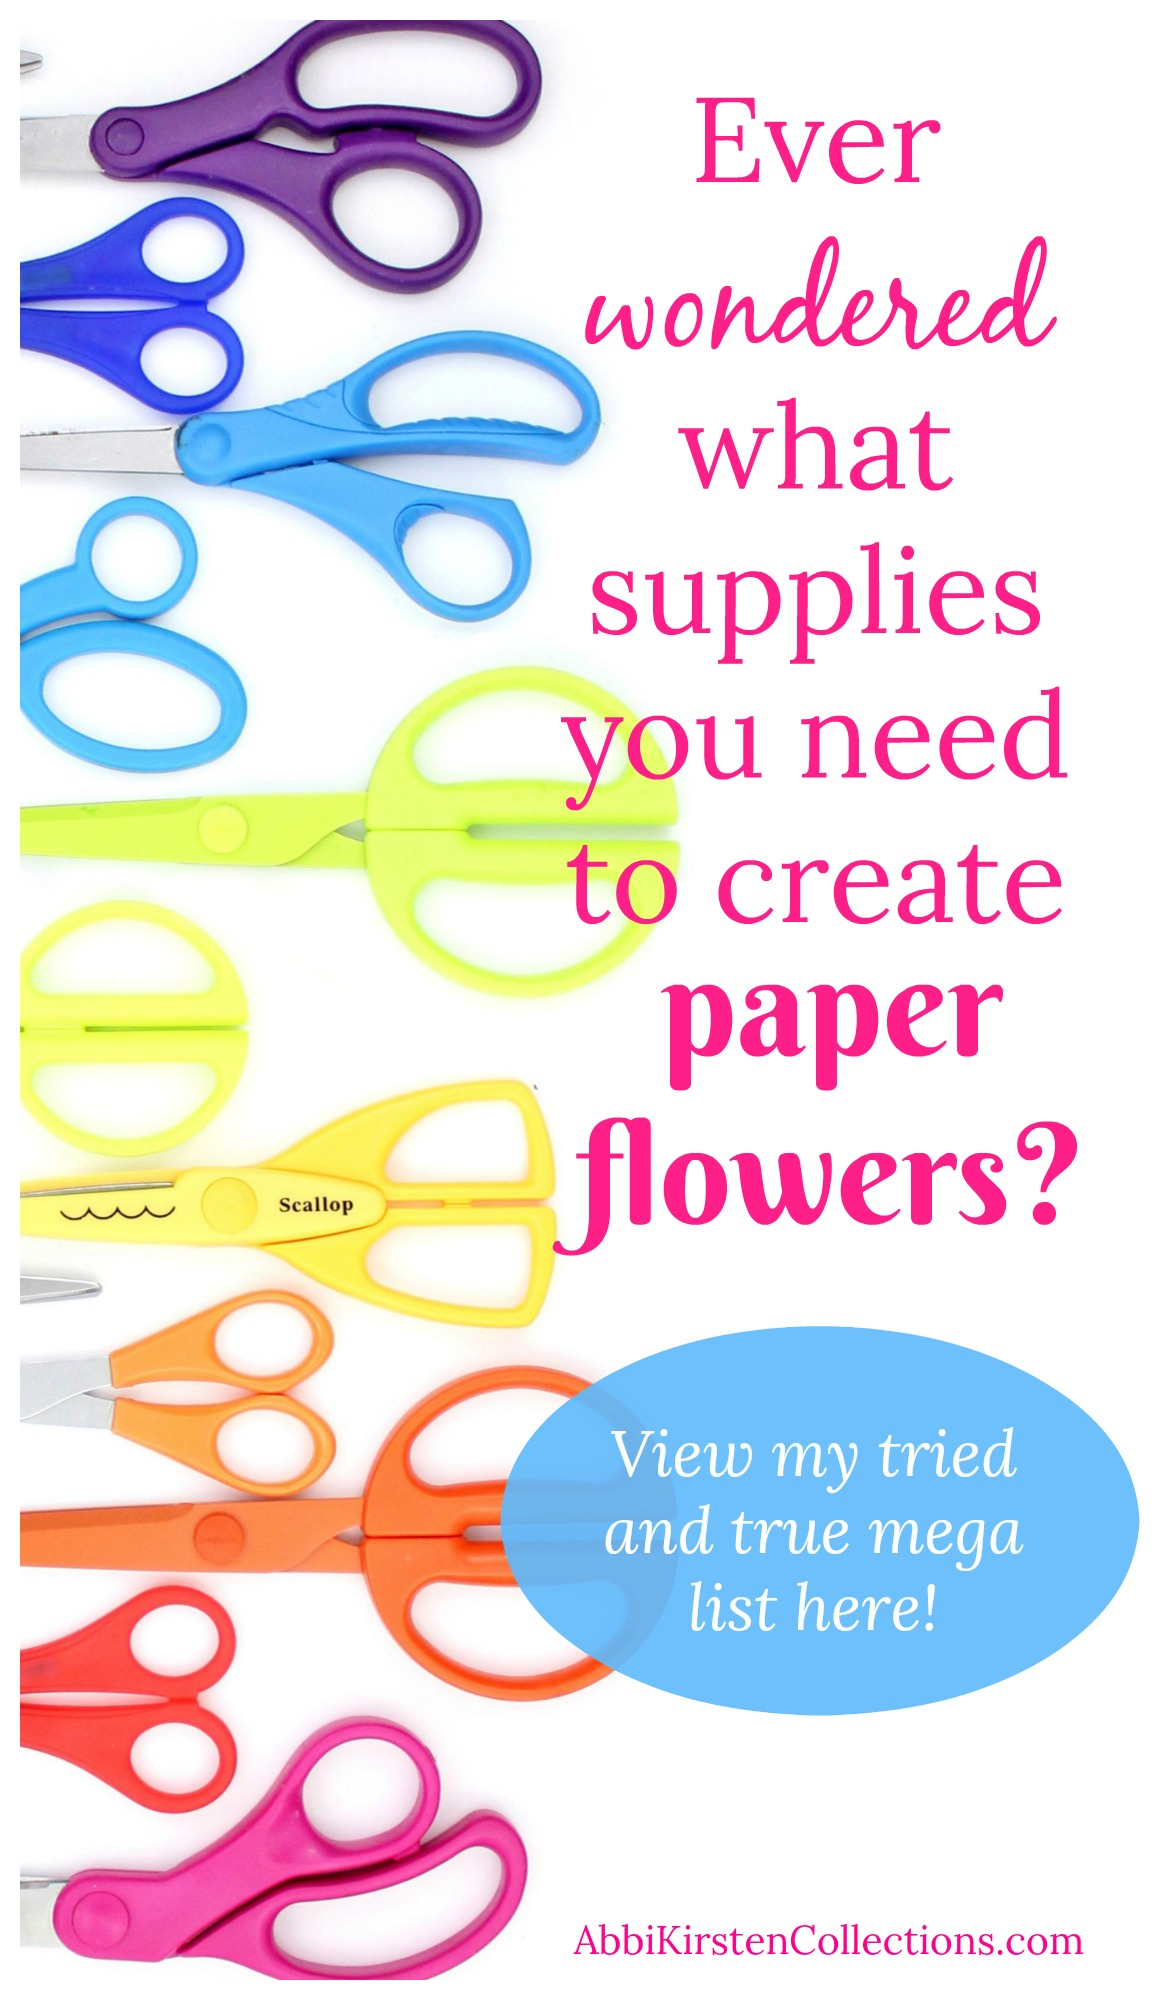 How to make giant hawaiian paper flowers abbi kirsten collections lets connect izmirmasajfo Choice Image